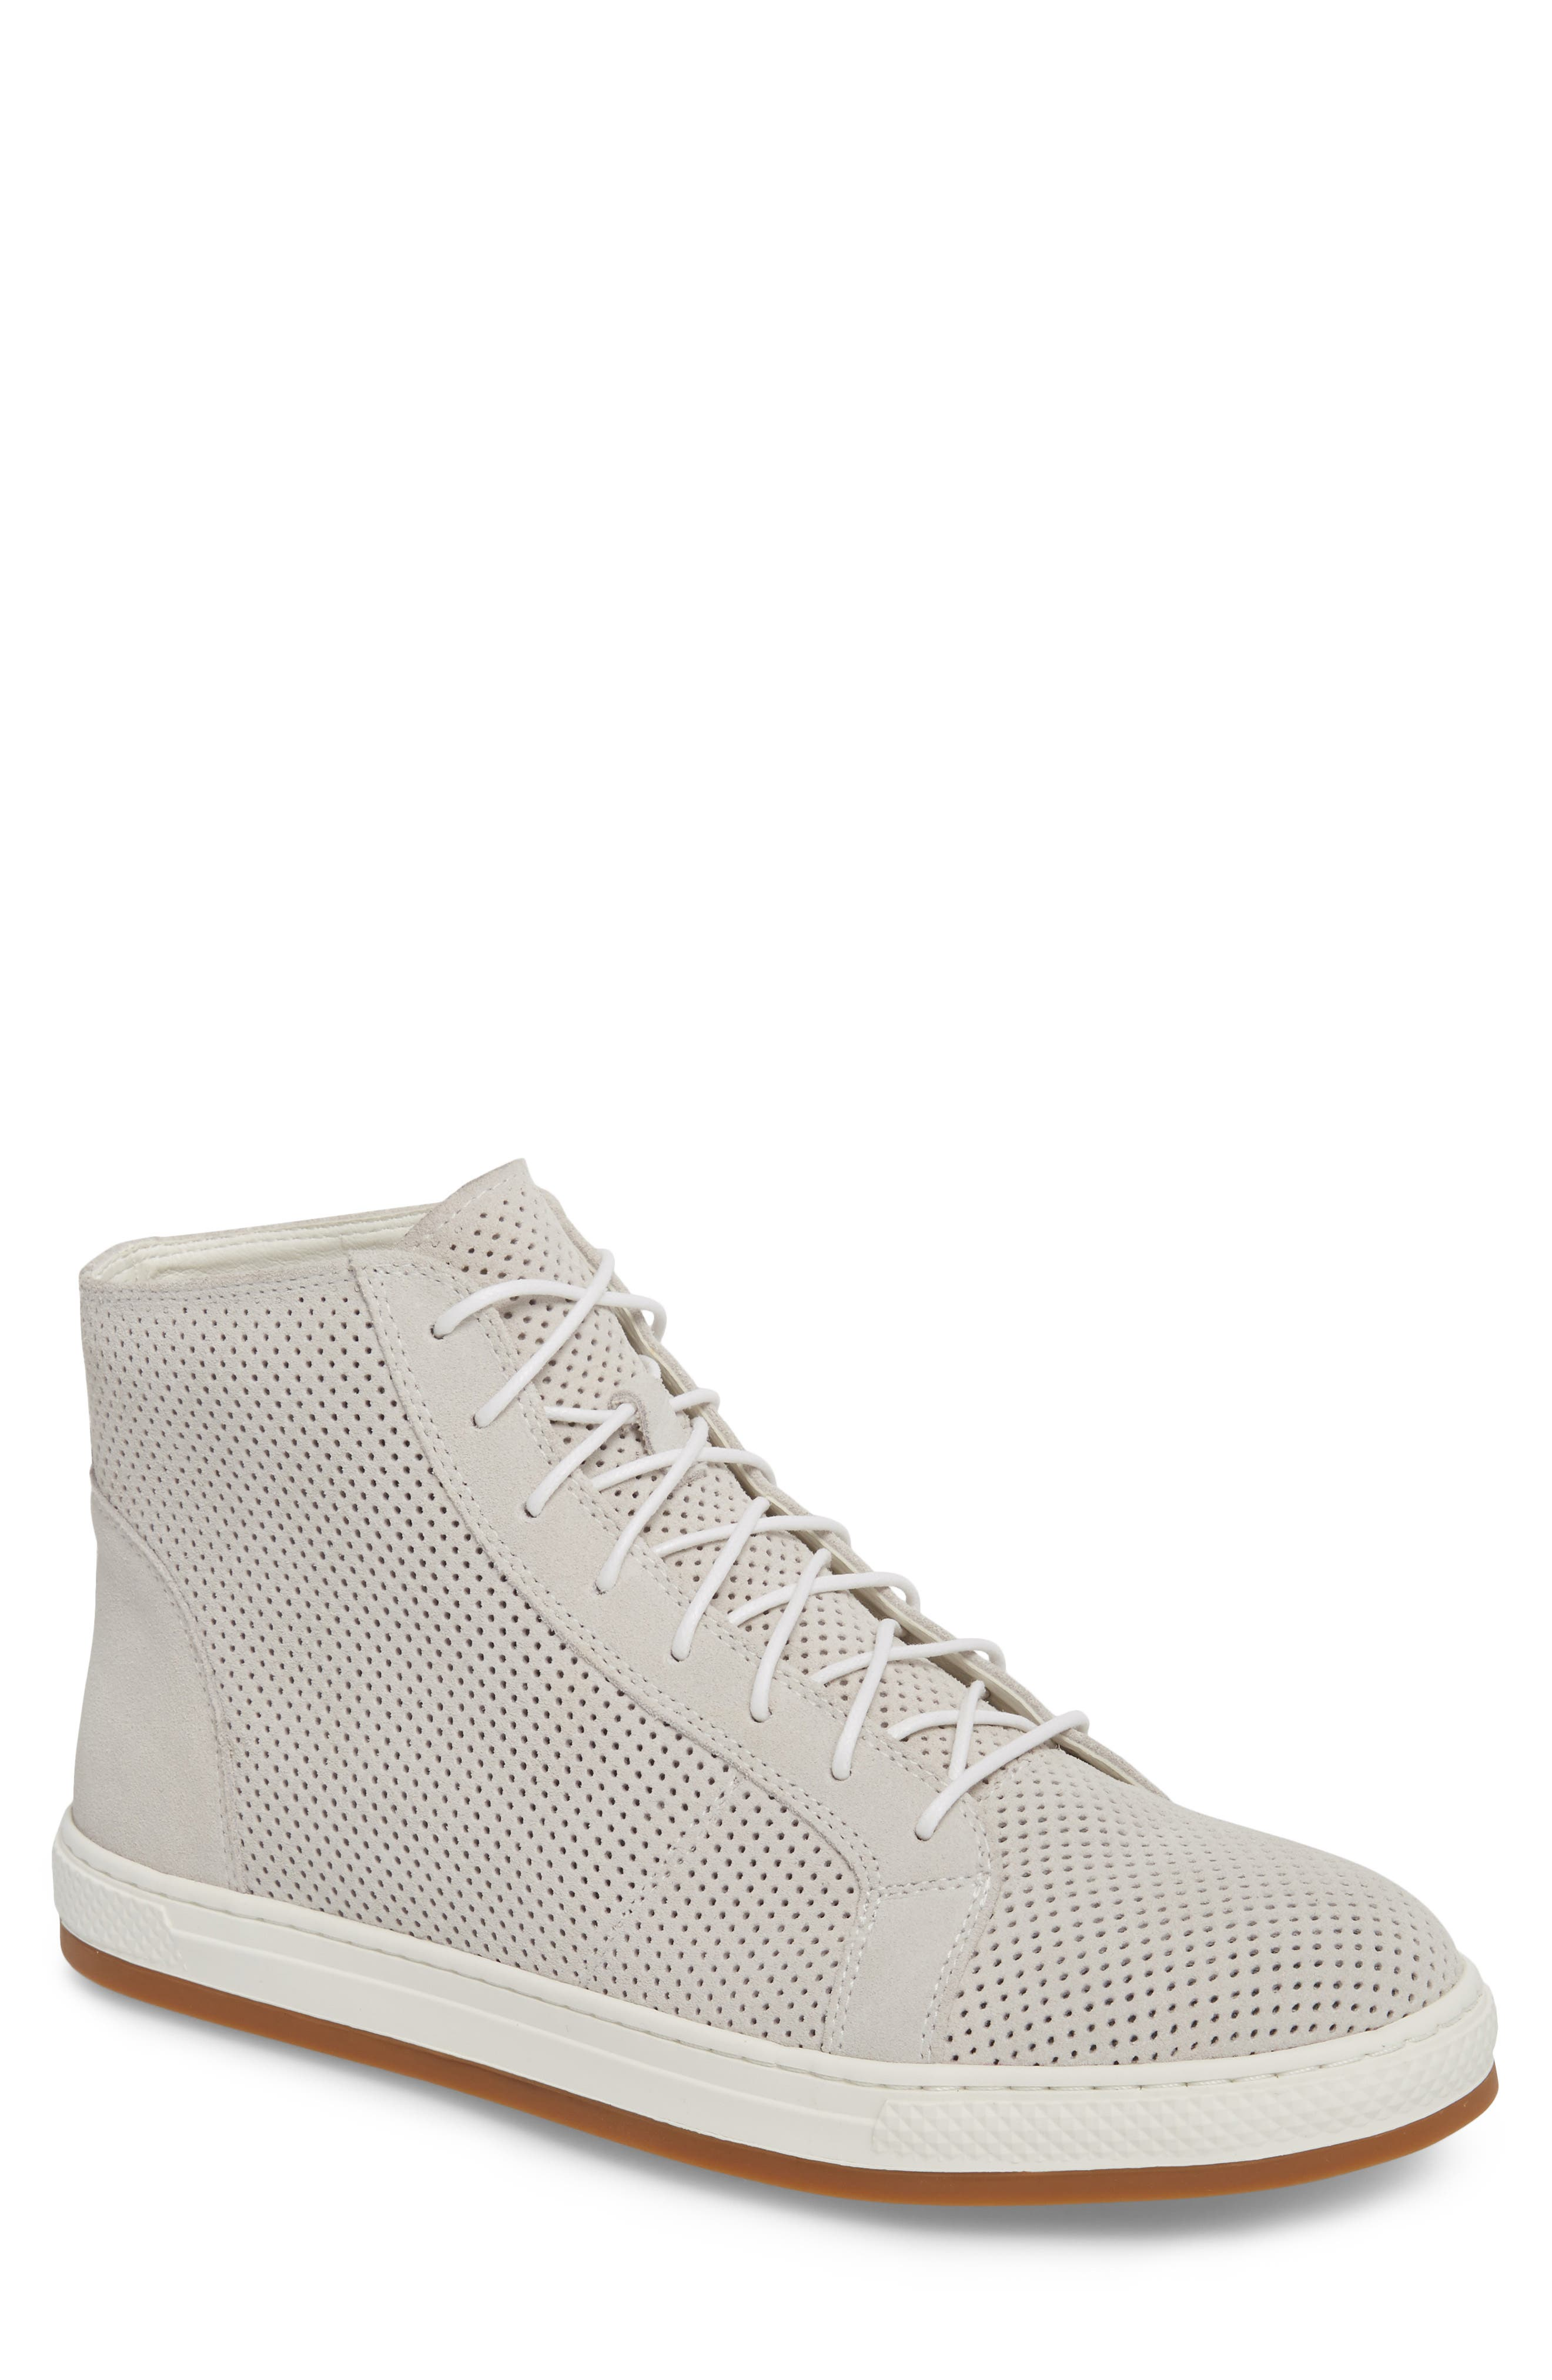 English Laundry Windsor Perforated High Top Sneaker (Men)